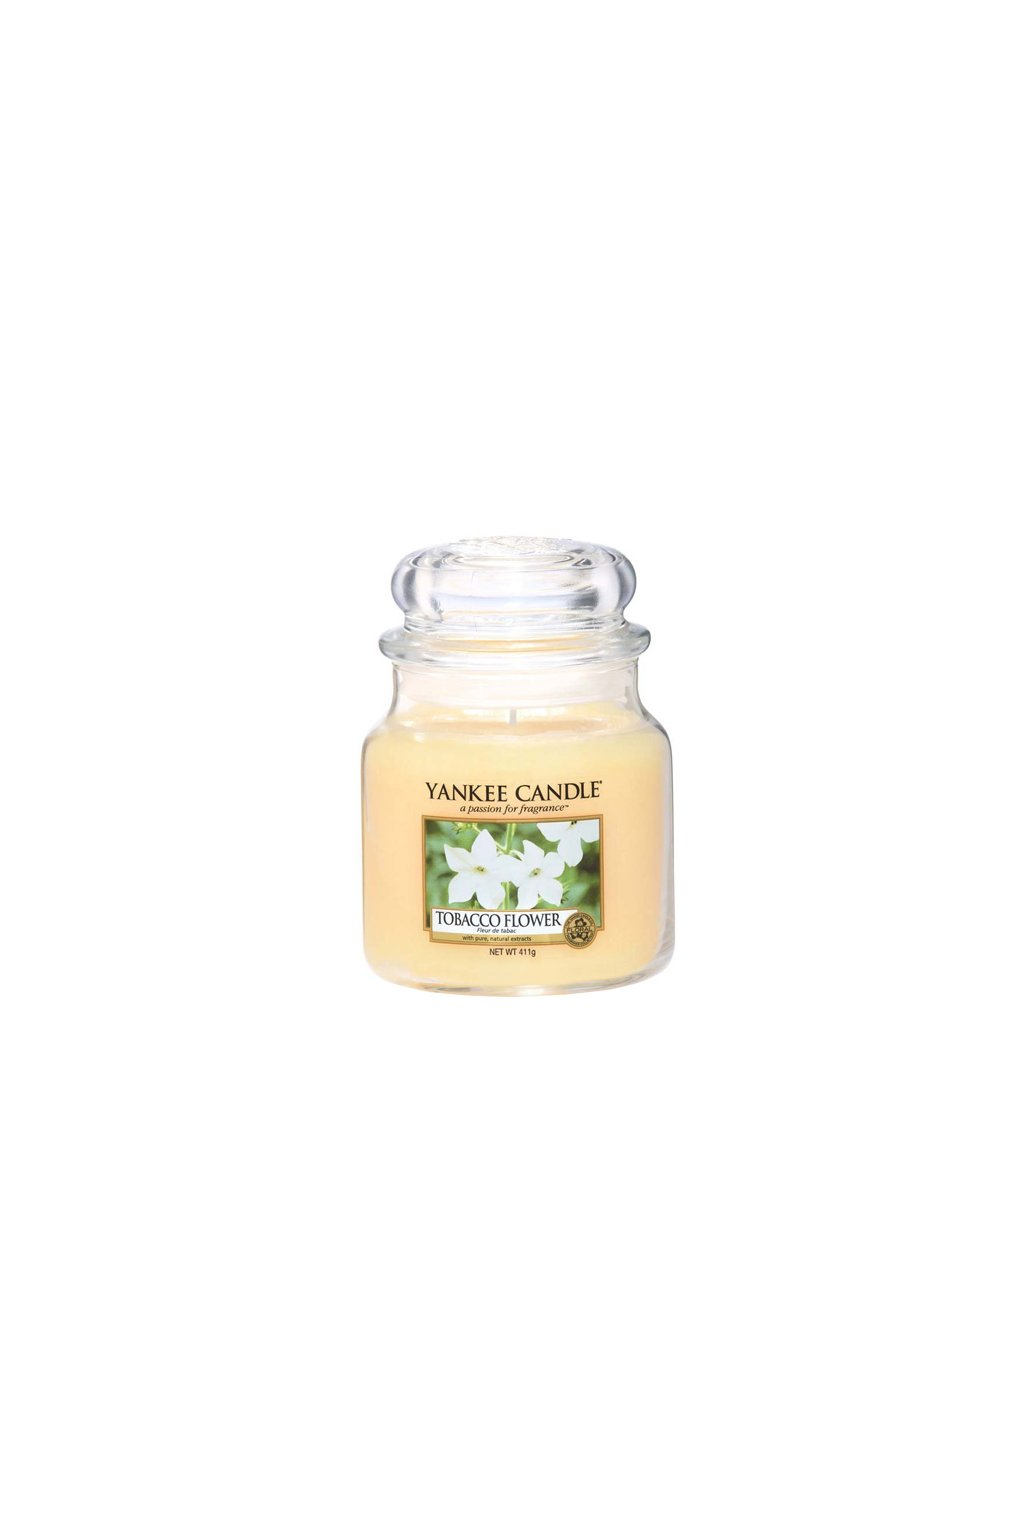 YANKEE CANDLE Tabacco Flower 411g